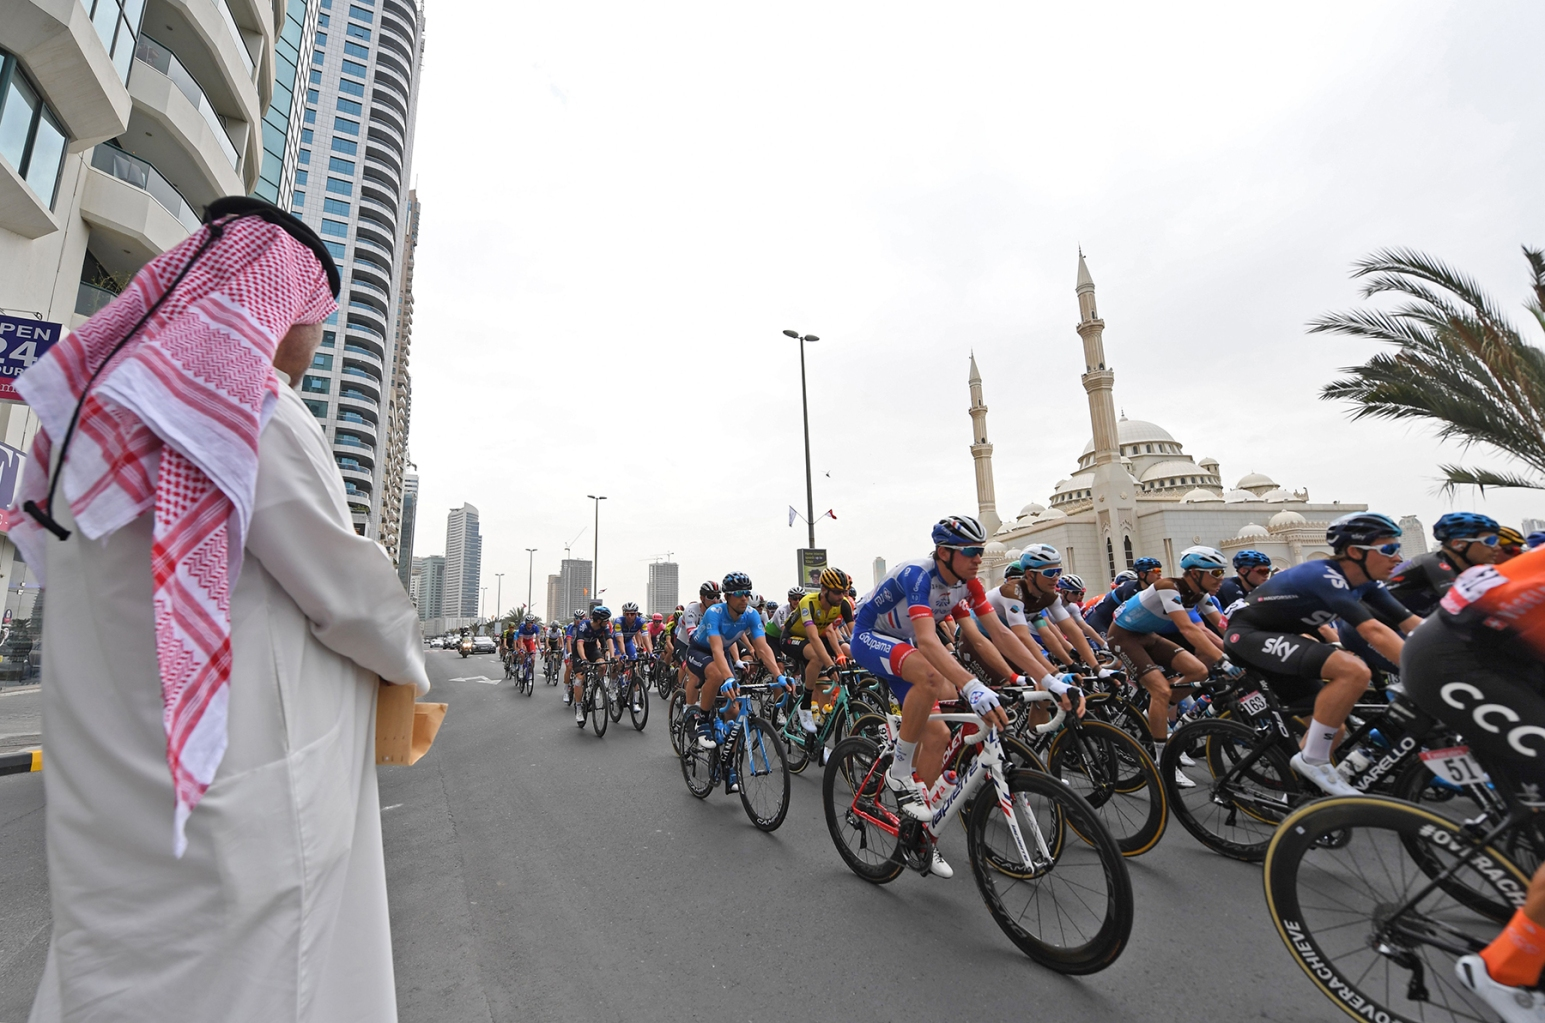 The pack of cyclists rides past during the fifth stage of the UAE tour from Sharjah to Khor Fakkan on Feb. 28. GIUSEPPE CACACE/AFP/Getty Images